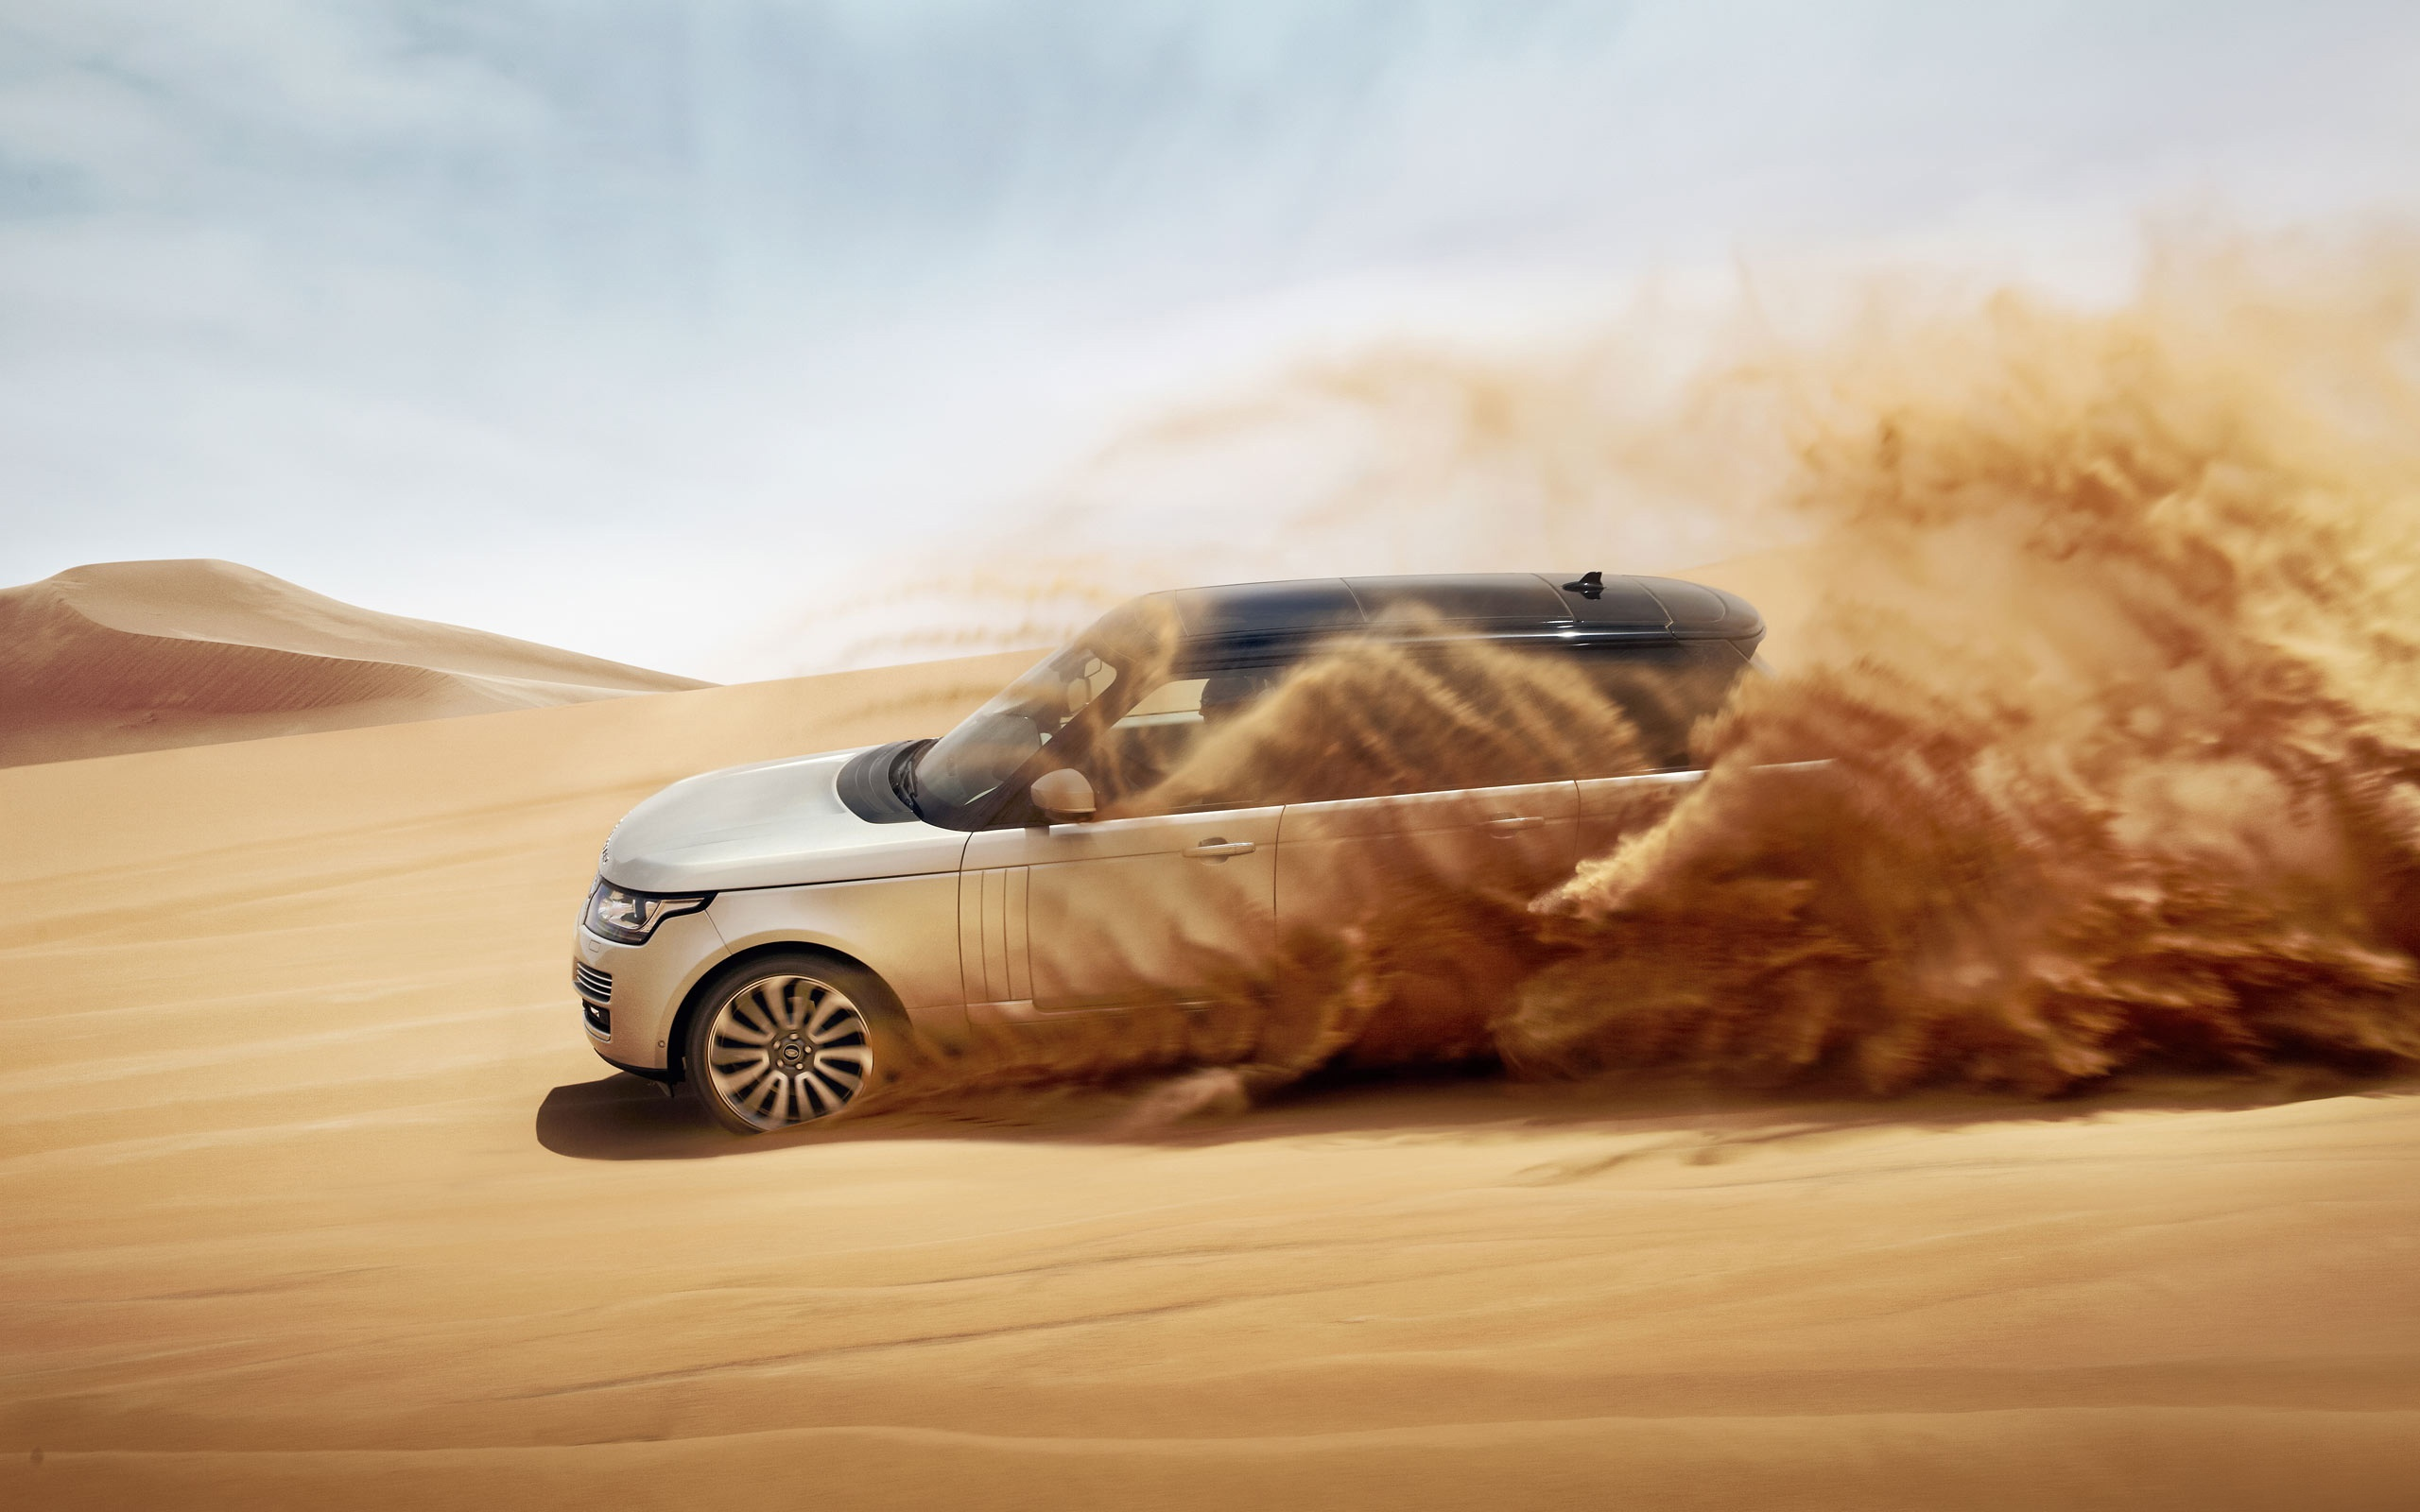 Hd Range Rover Wallpapers Amp Range Rover Background Images